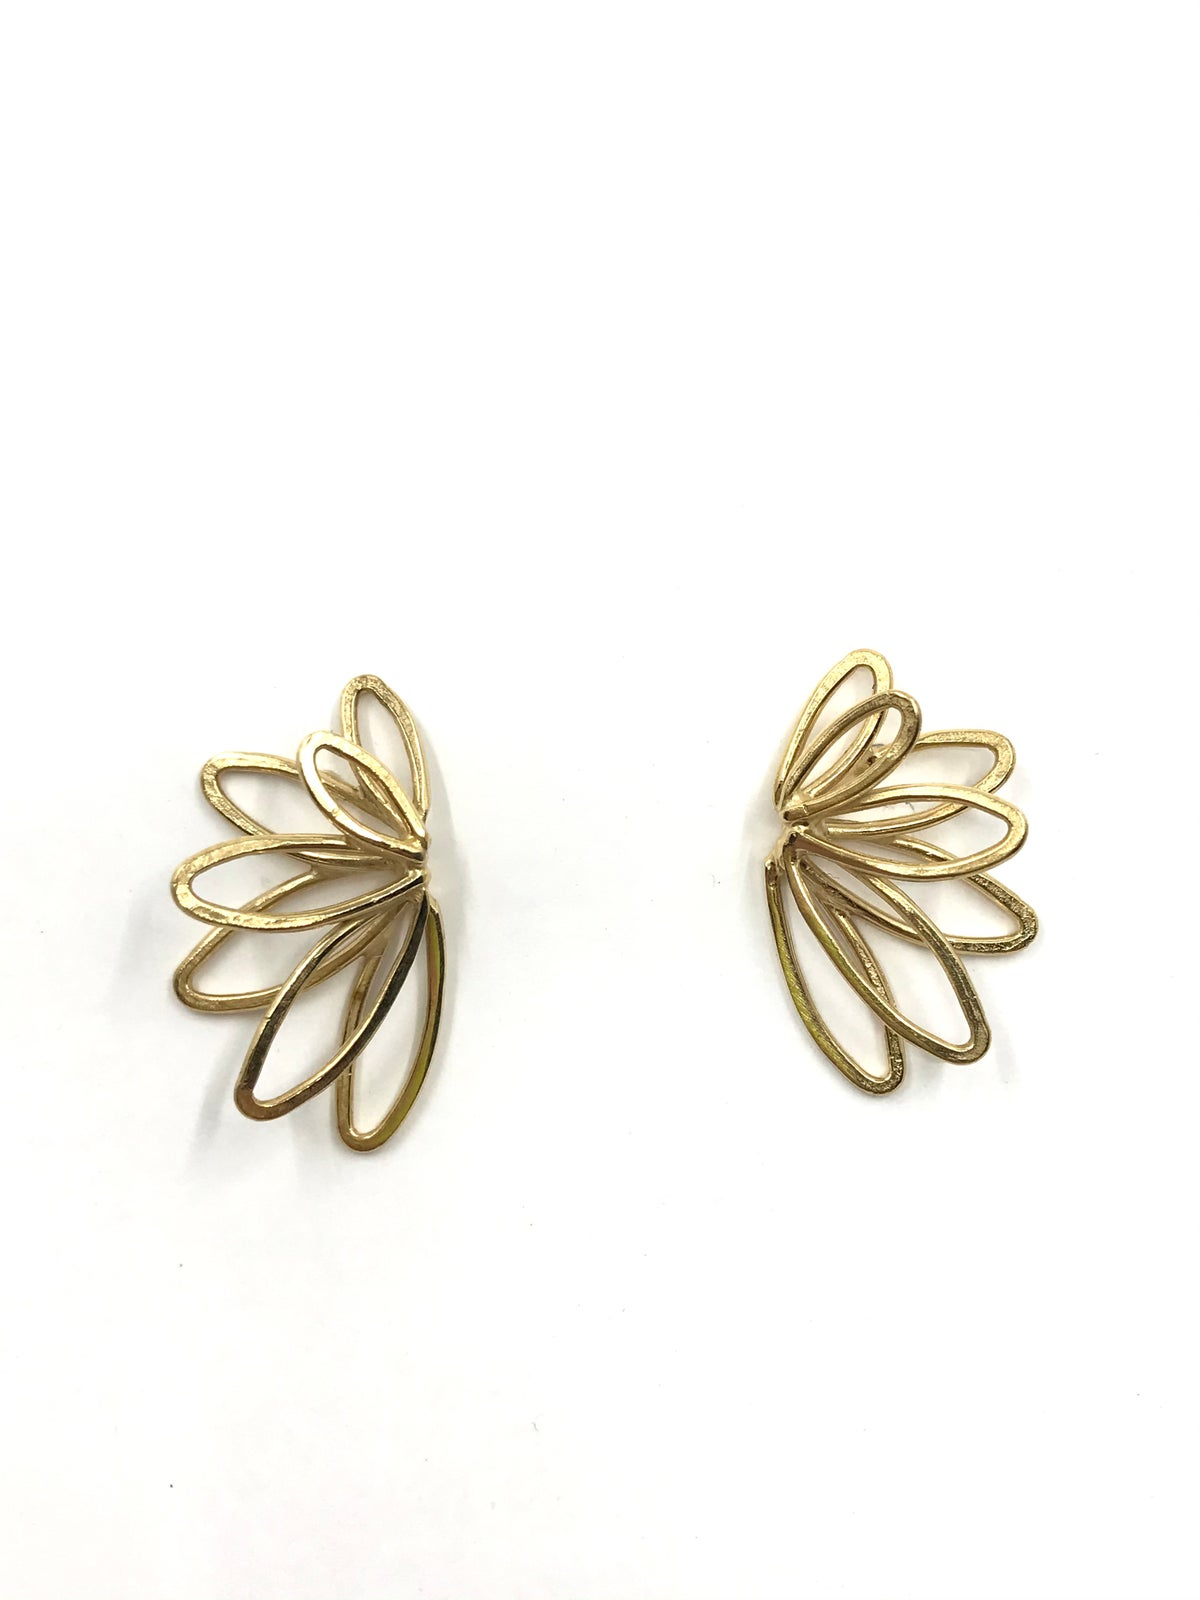 Gold Starburst Earrings by Leia Zumbro